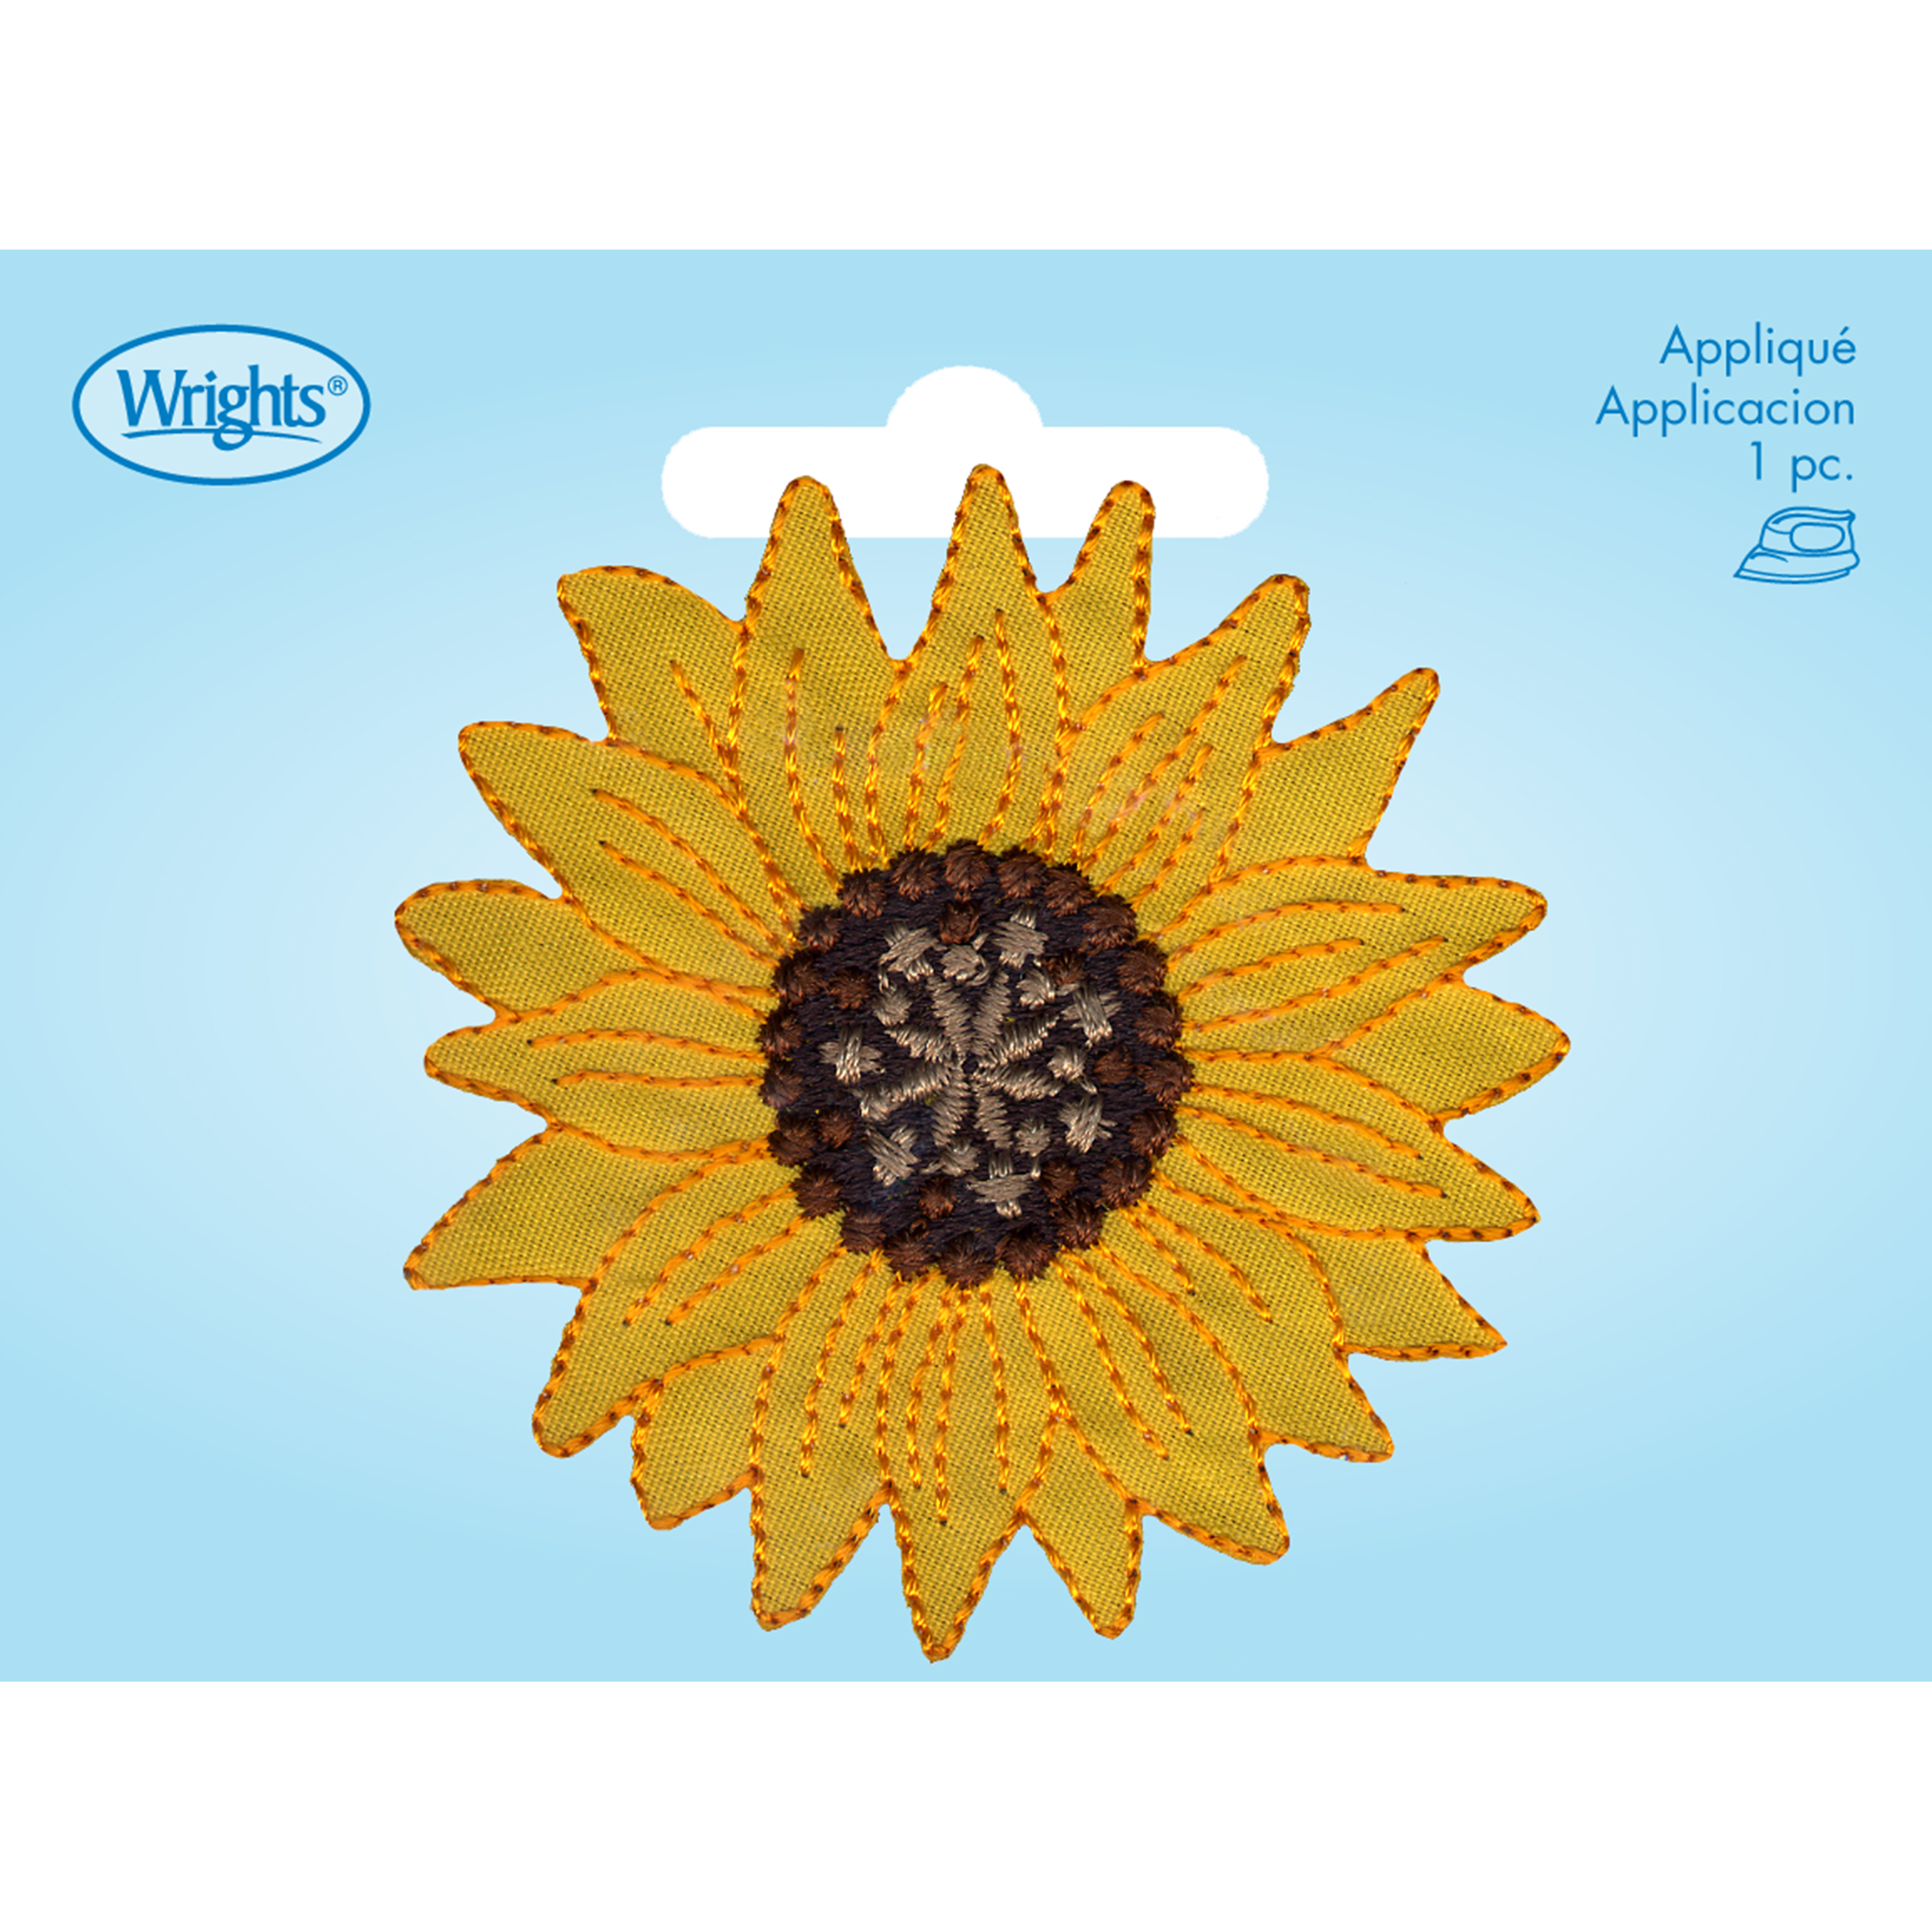 1PC~BEAUTIFUL SUNFLOWER ~IRON ON EMBROIDERY APPLIQUE